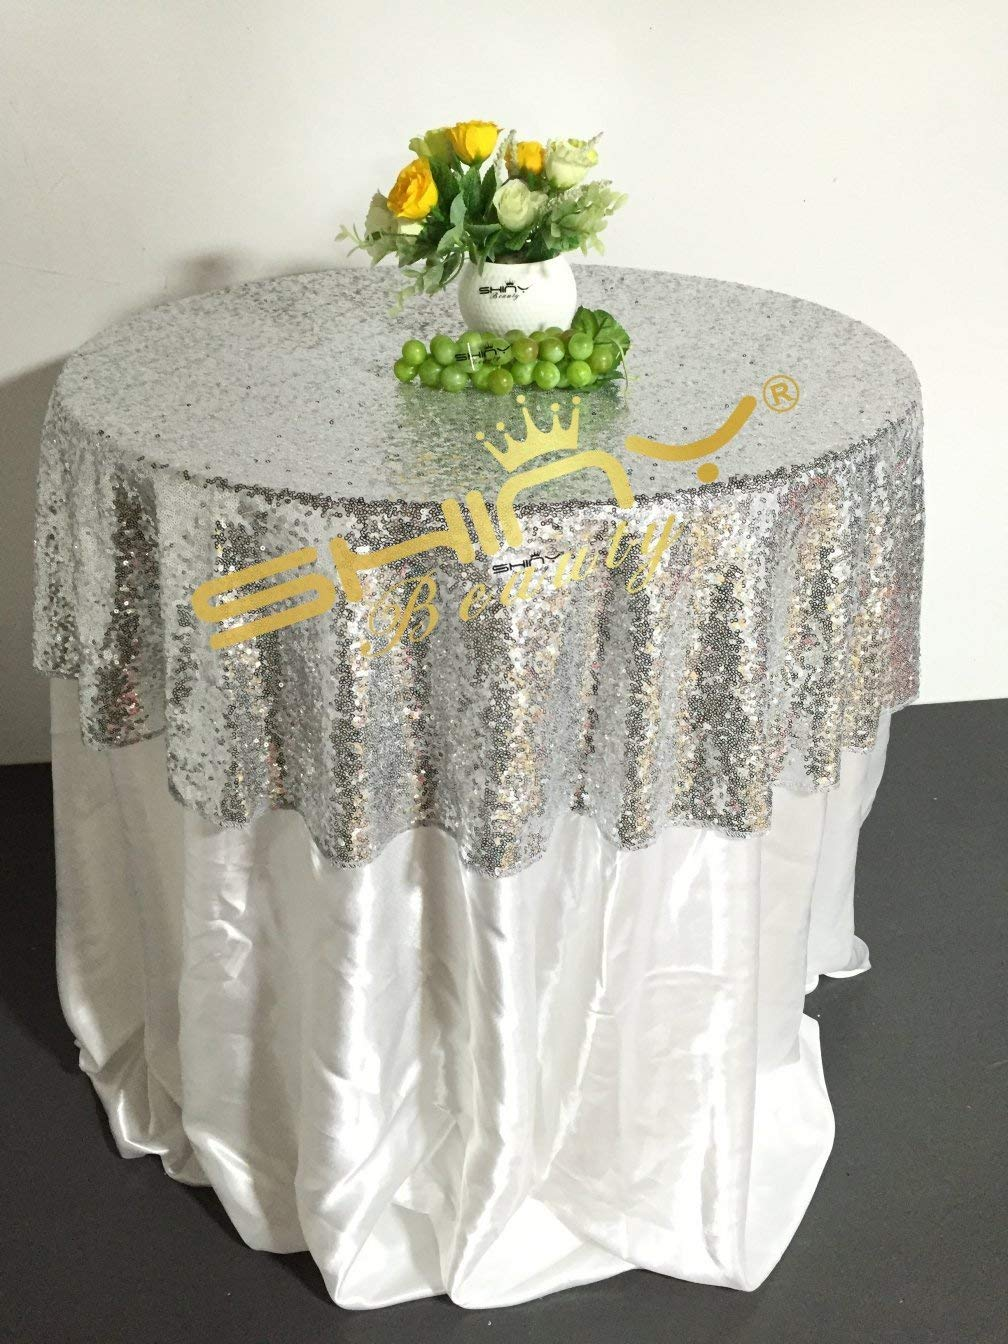 incredible Cheap Lace Overlays Part - 10: Get Quotations · ShinyBeauty 30-Inch Round Silver Sequin Tablecloth For  Wedding Party Sequin Fabric Table Overlays